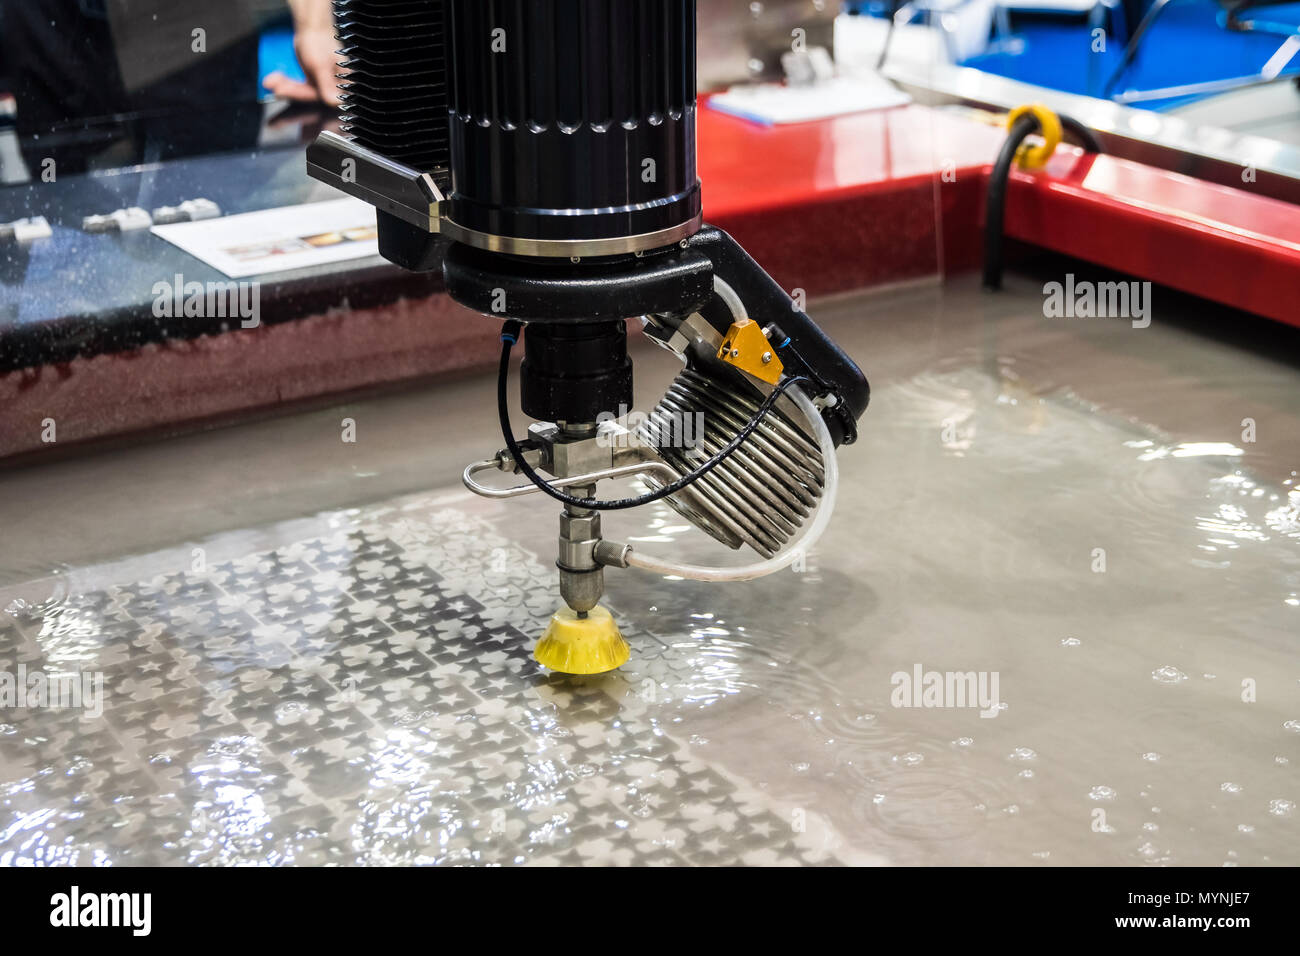 Precision 5 axis cutting head with direct drive technology - Stock Image